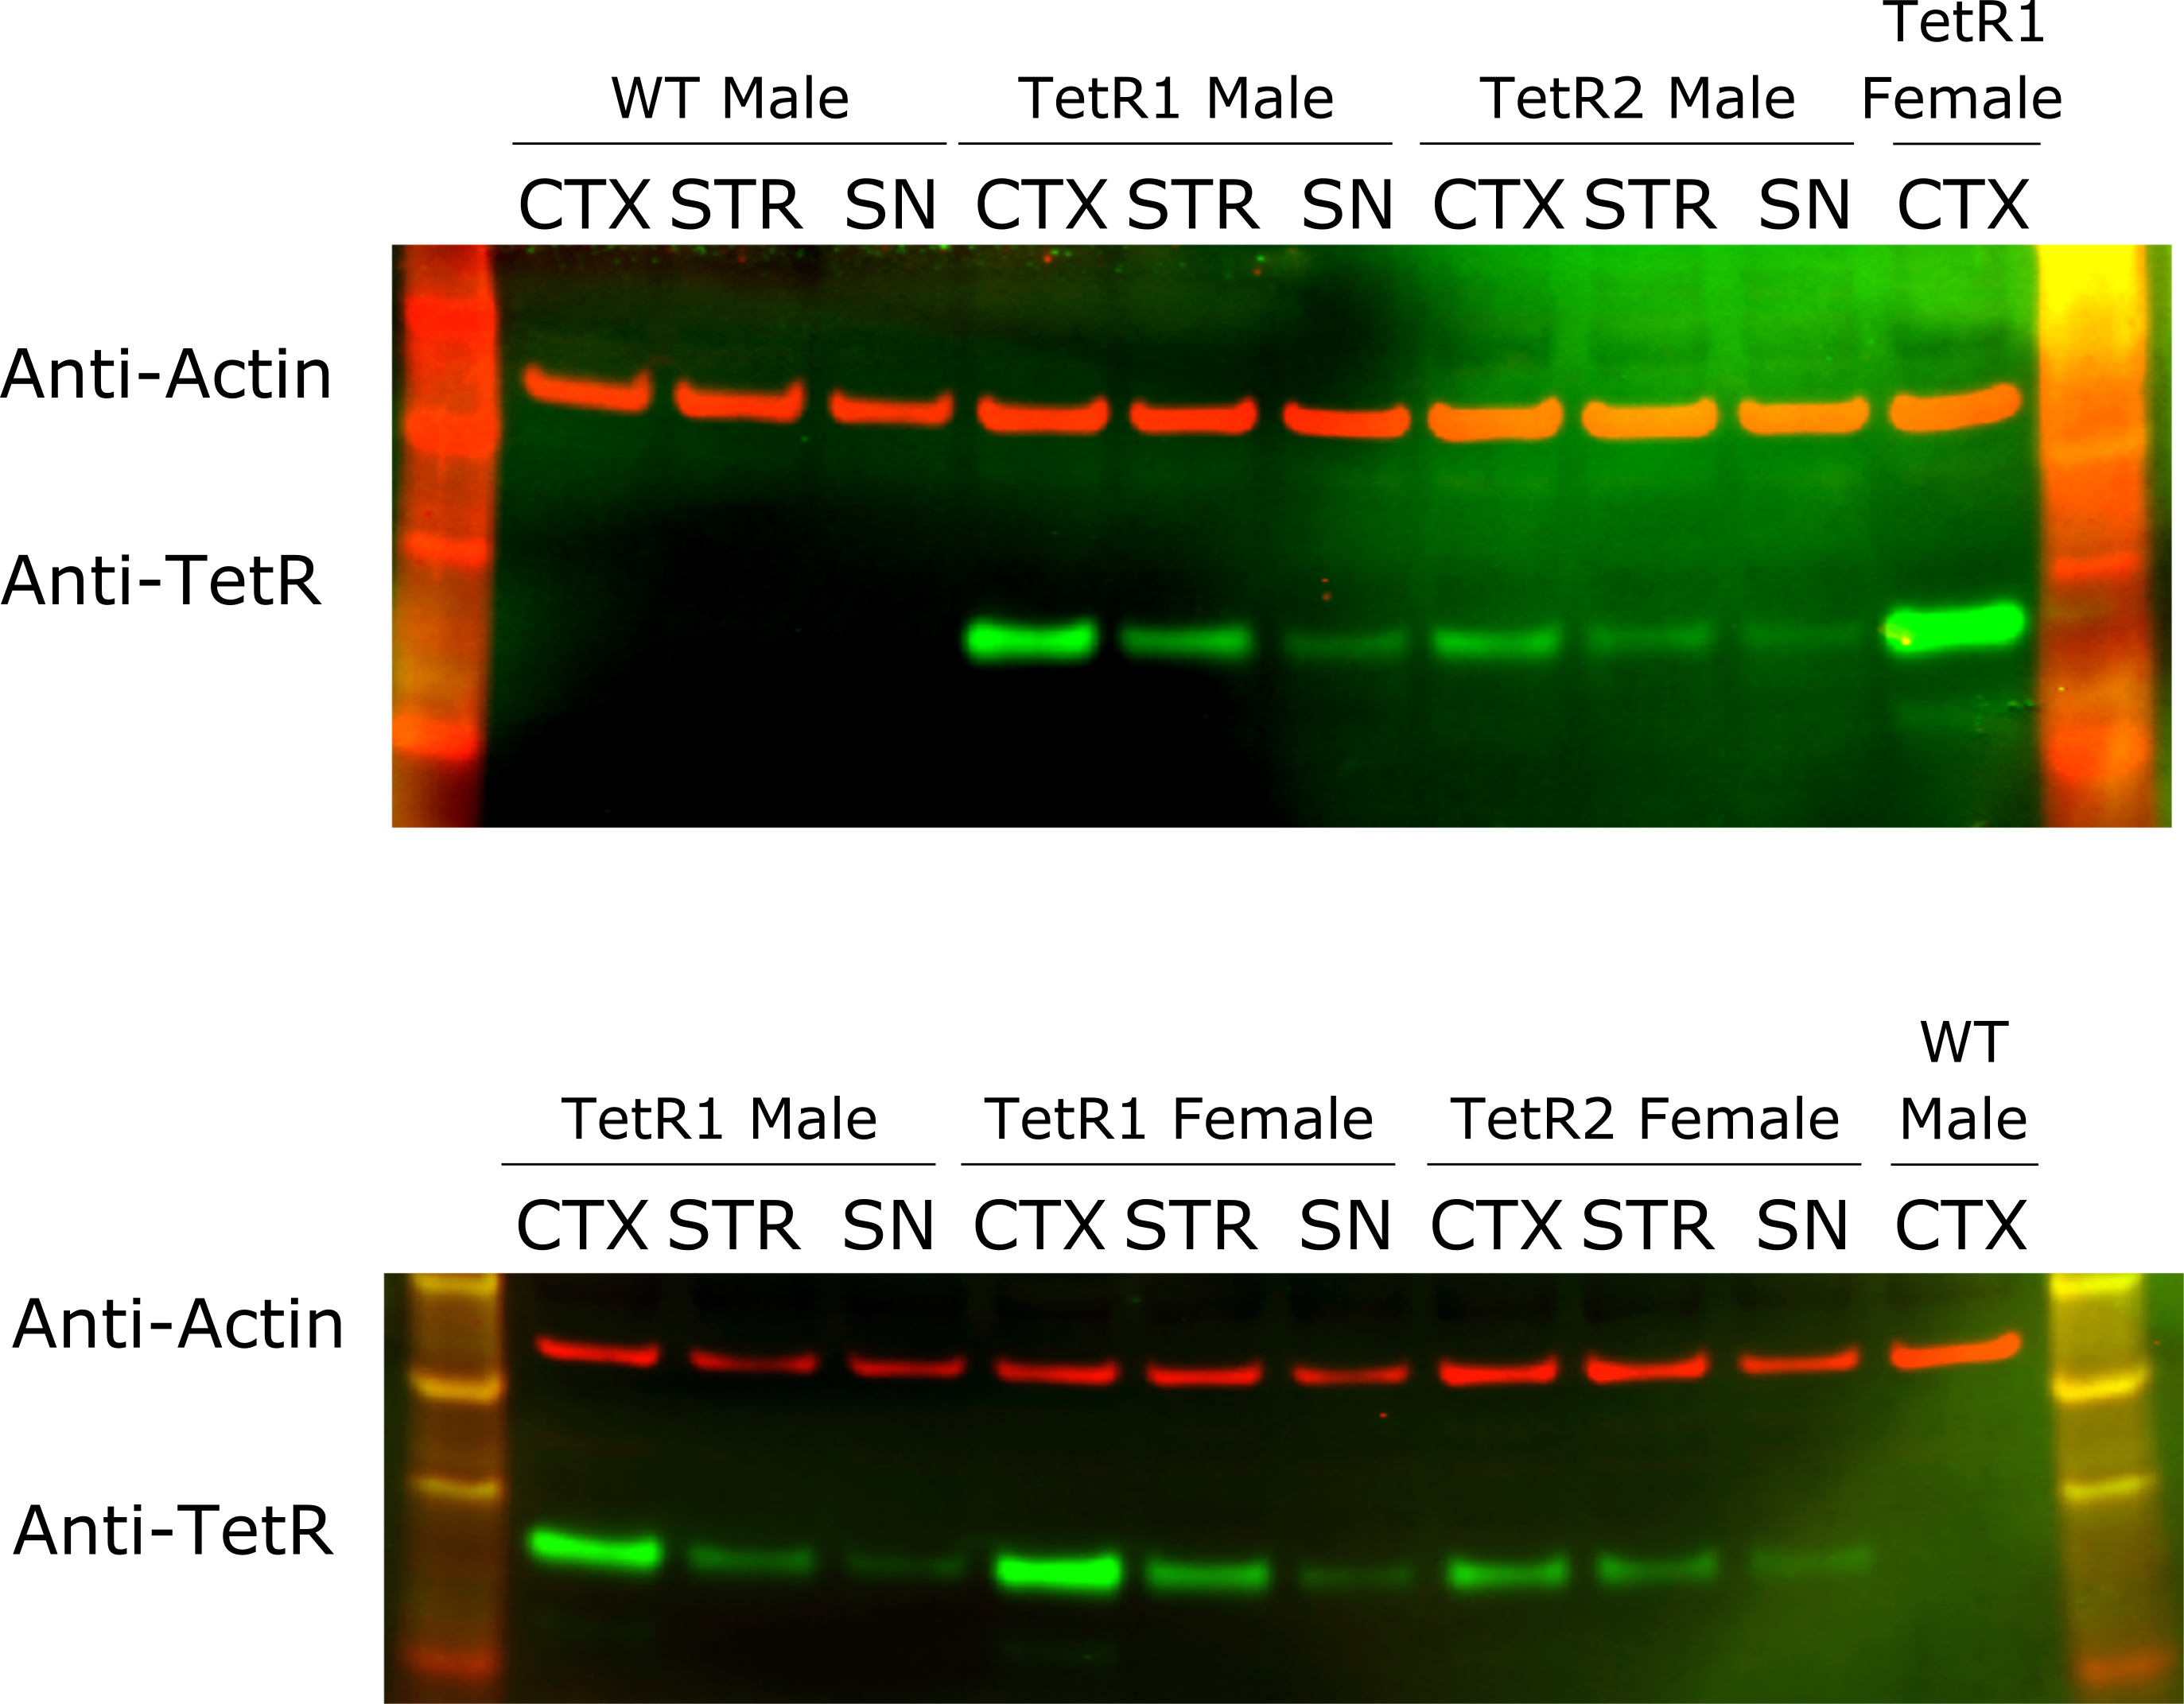 Figure 2. Detection of TetR transgene expression in the rat brain.